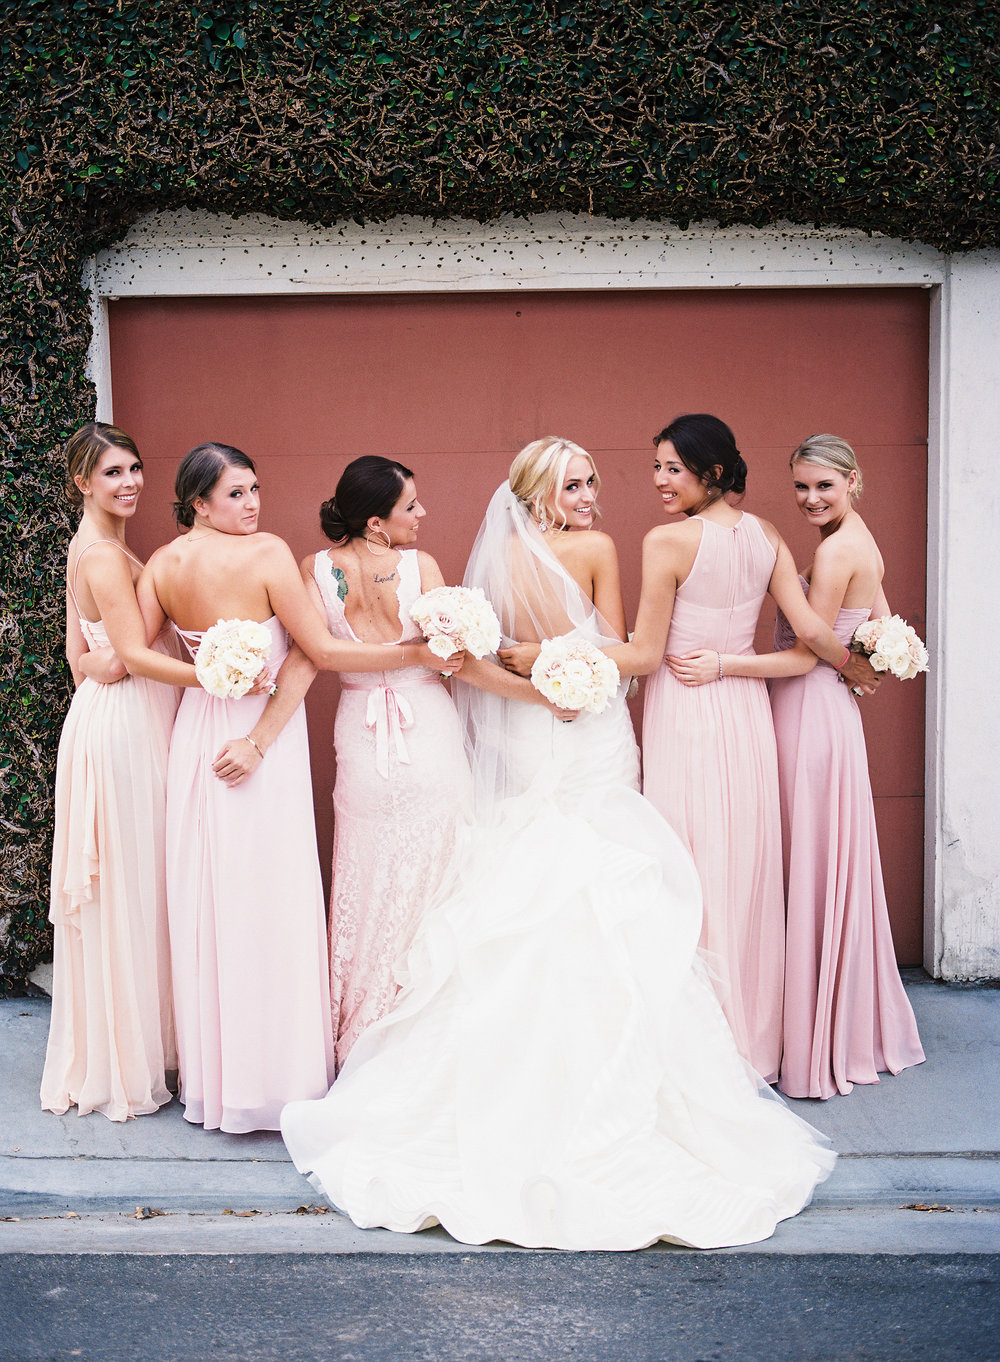 La Jolla Wedding at Darlington House | Michelle Garibay Events